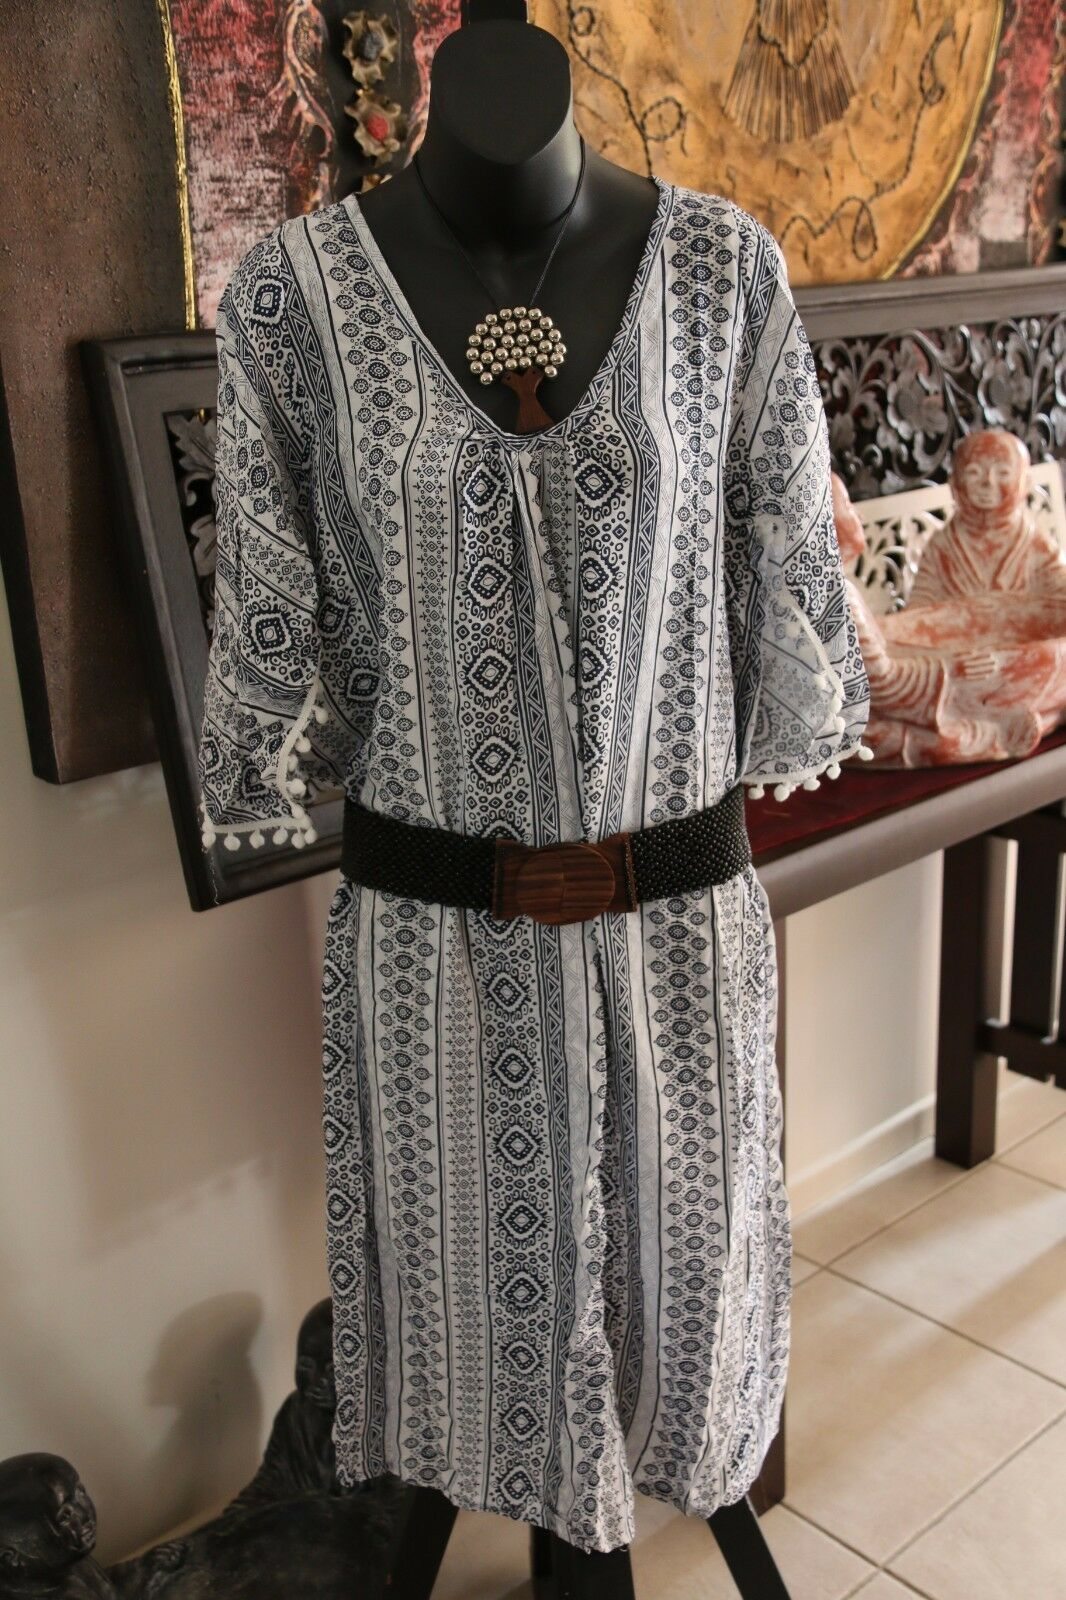 NEW Ladies Rayon/Cotton Bali Pom Pom Dress / One Size / Great mid-season dress..